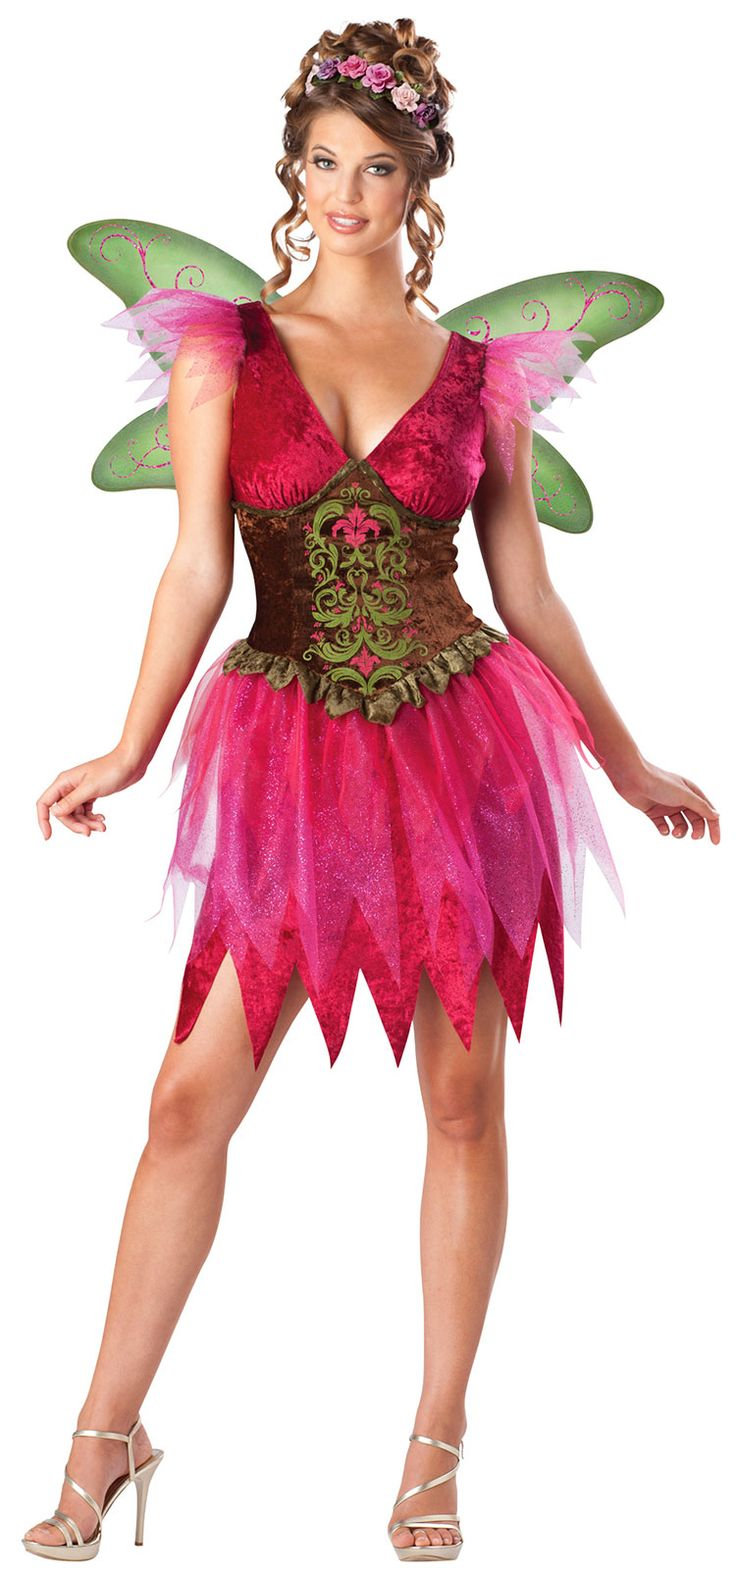 77 best images about Fairy costumes on Pinterest